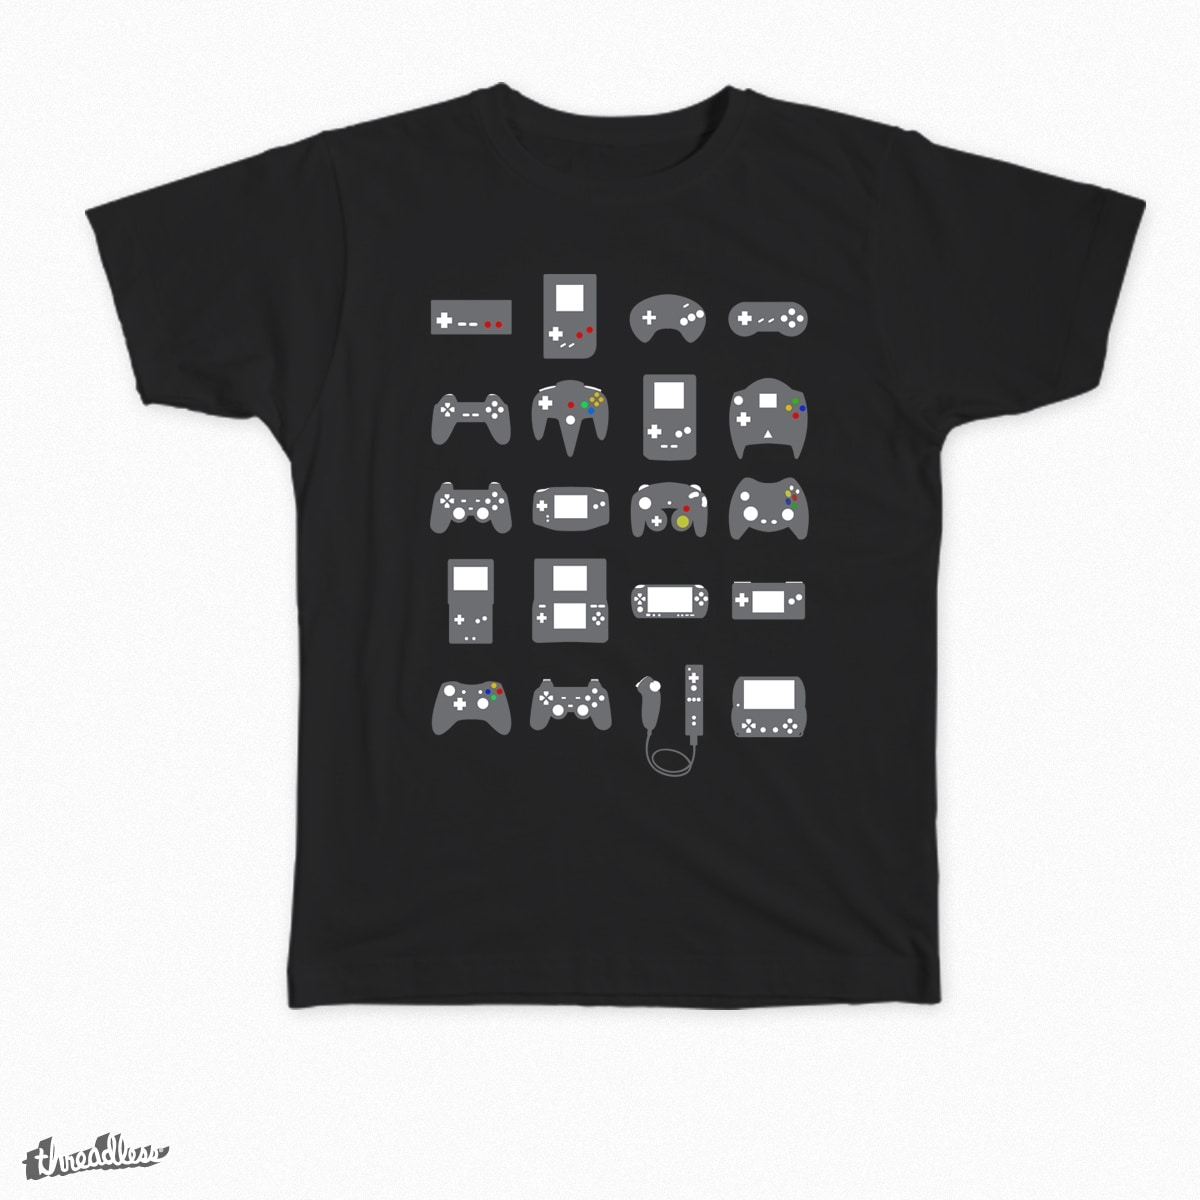 Weapon of choice by SpiritedCoast on Threadless